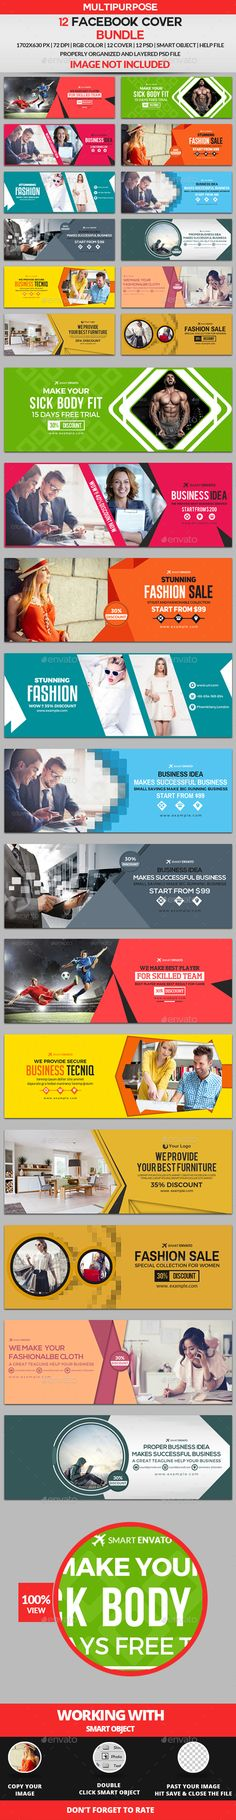 Facebook Cover Templates PSD Bundle - 12 Design